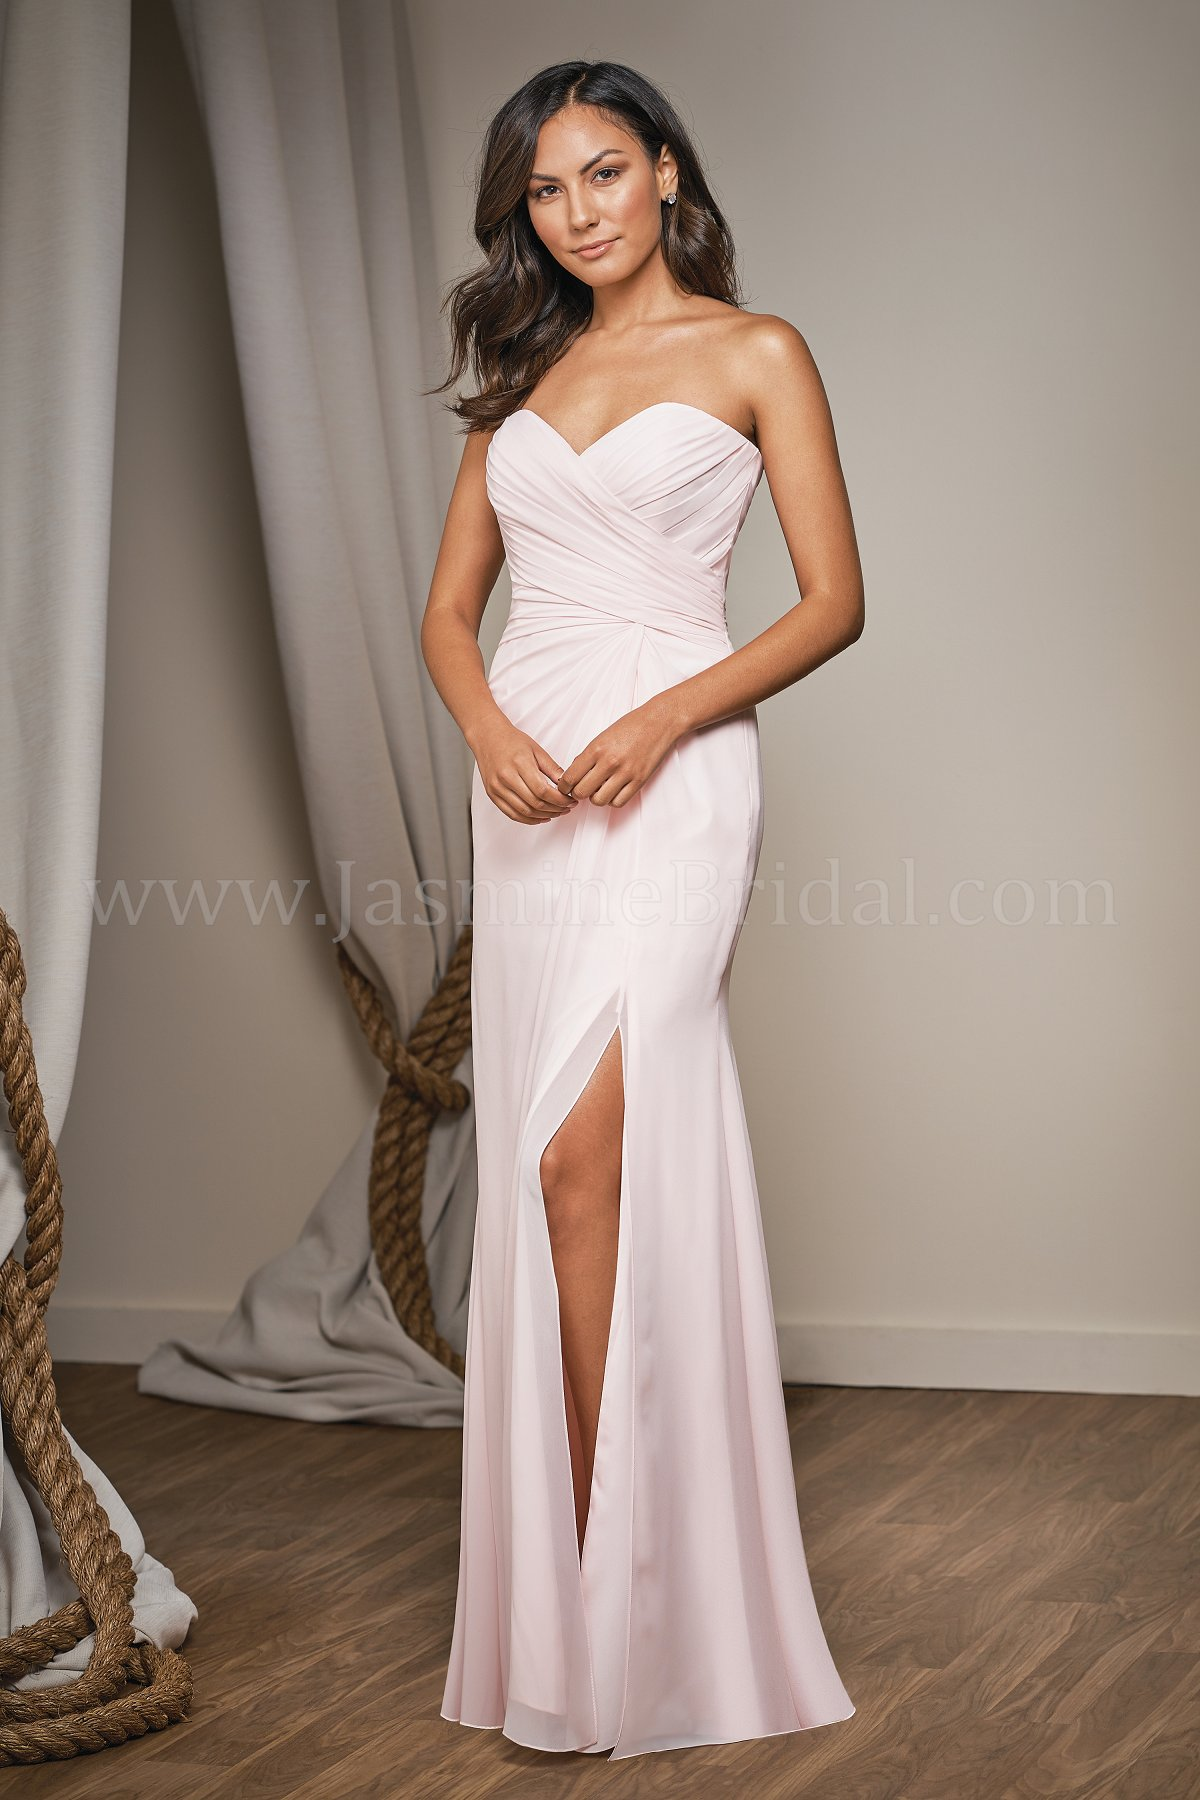 Long Strapless Bridesmaid Dresses